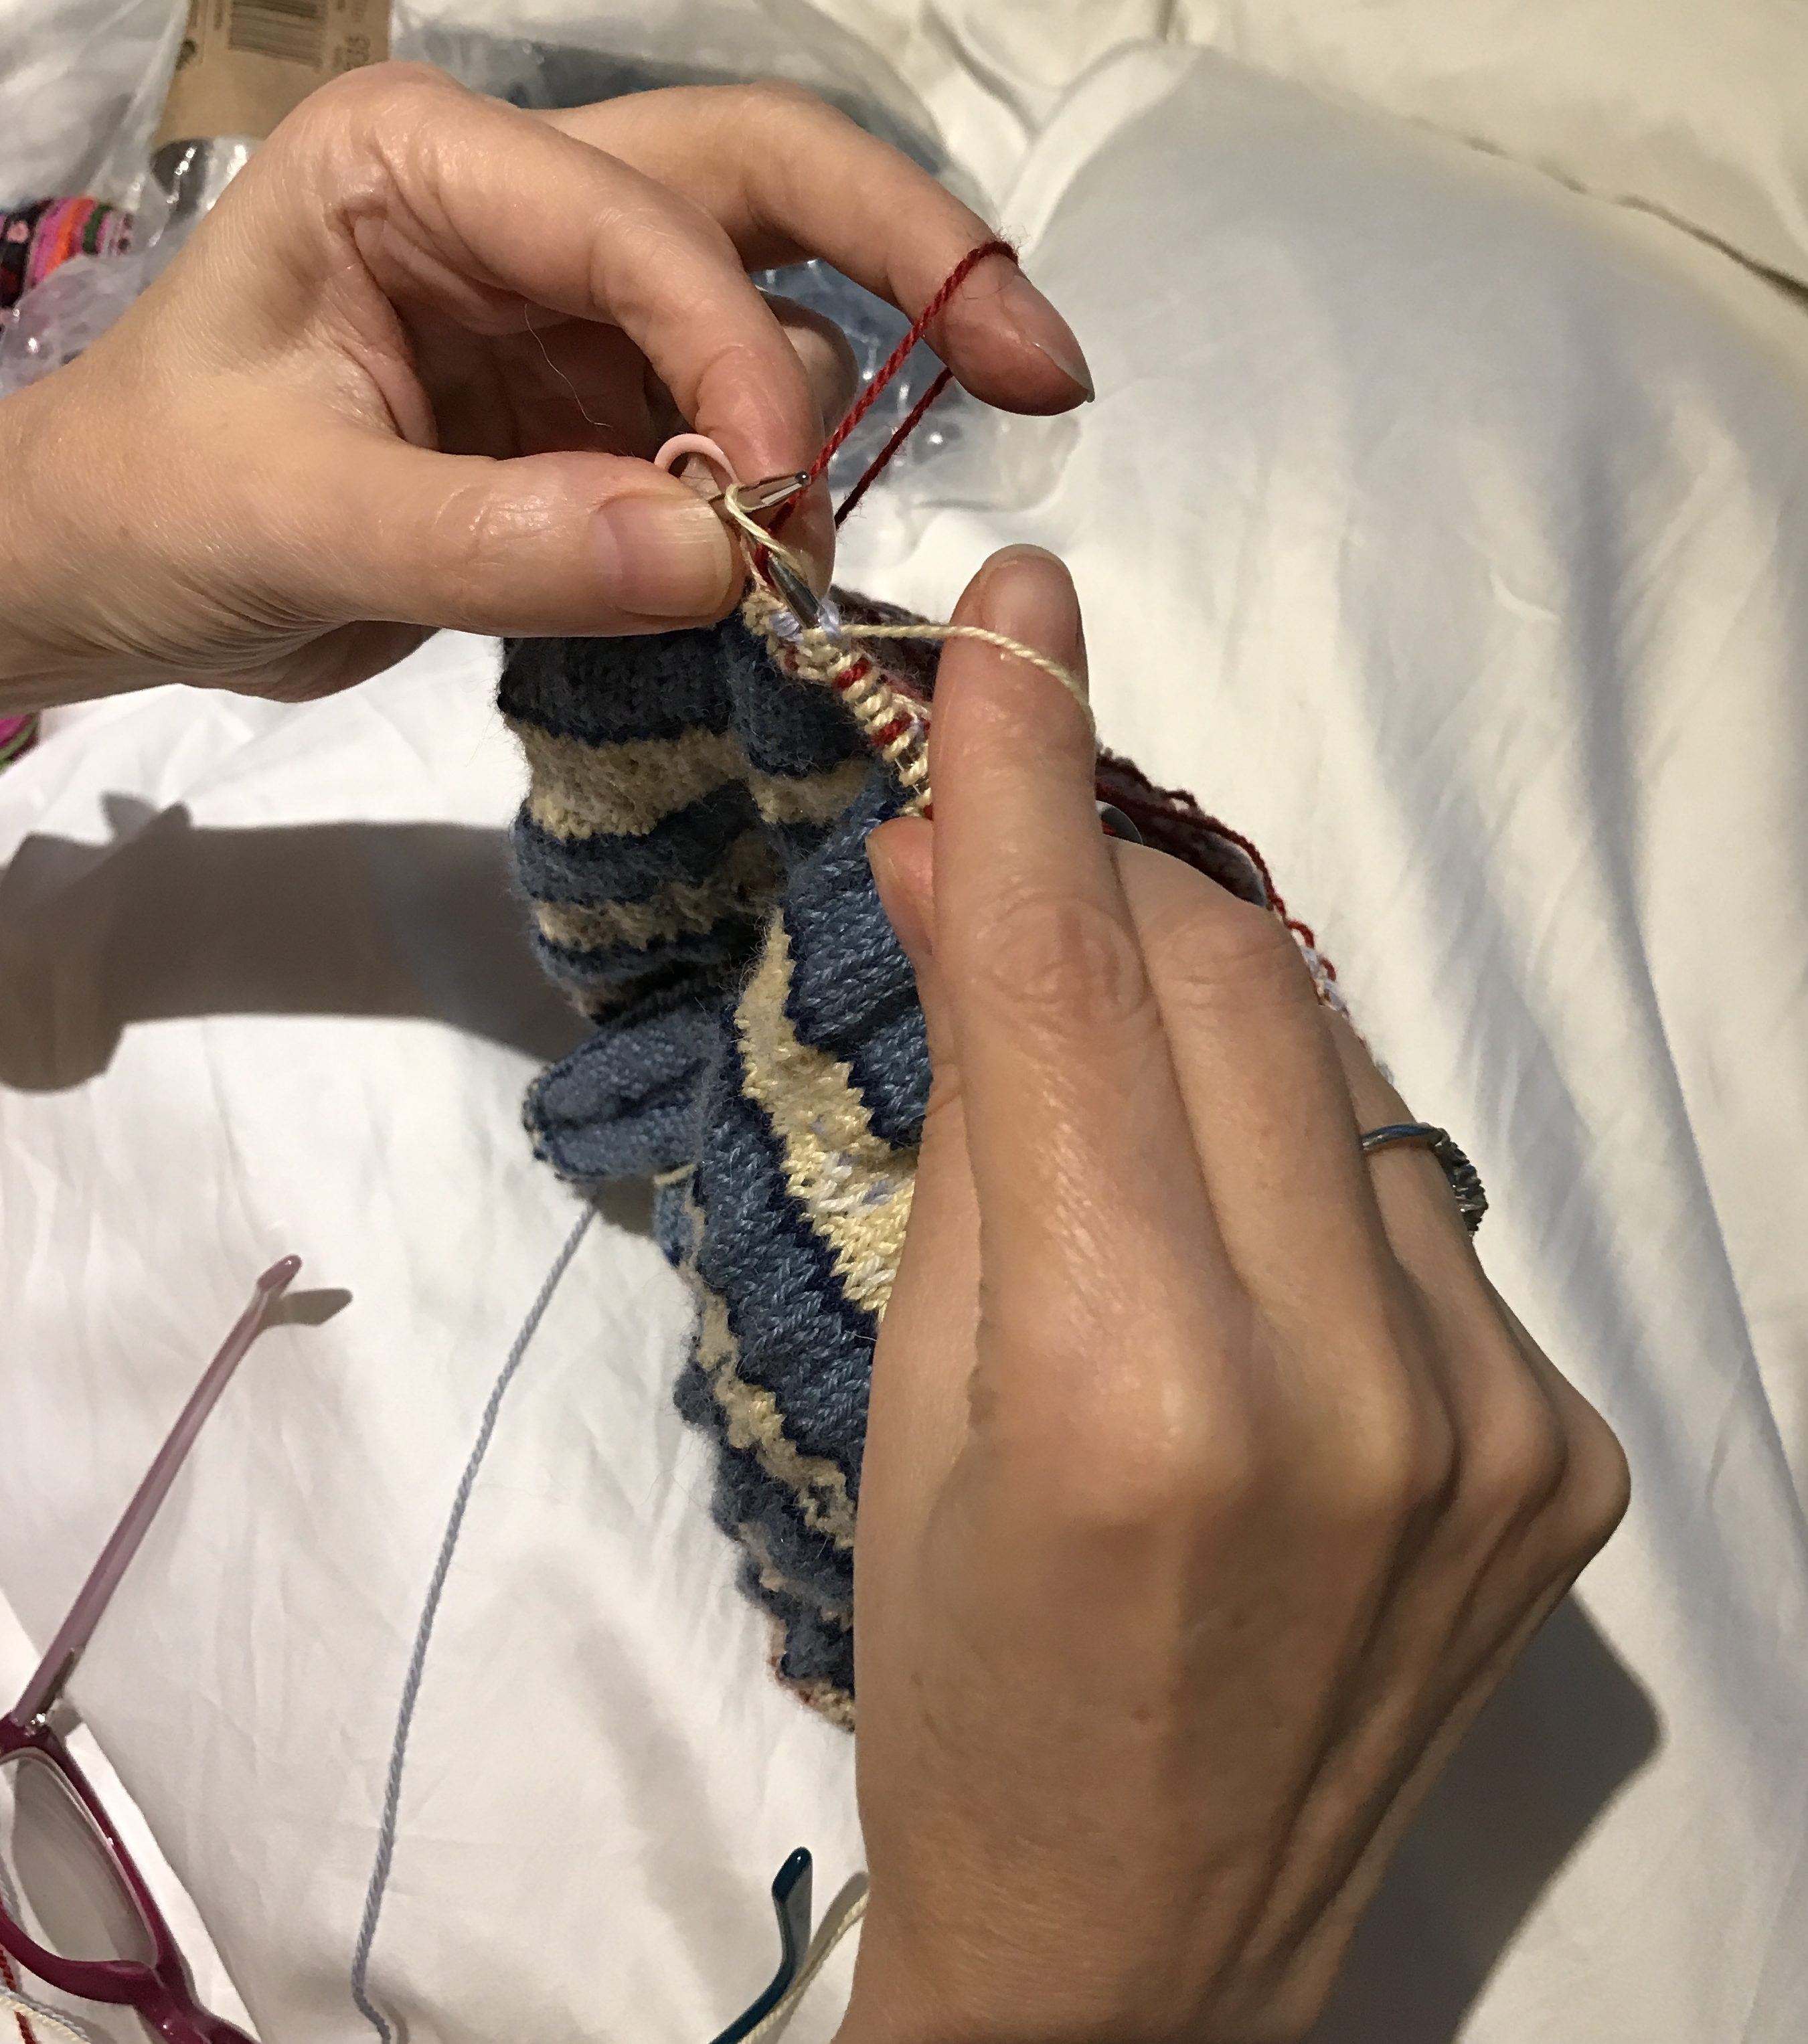 Knitting using both hands